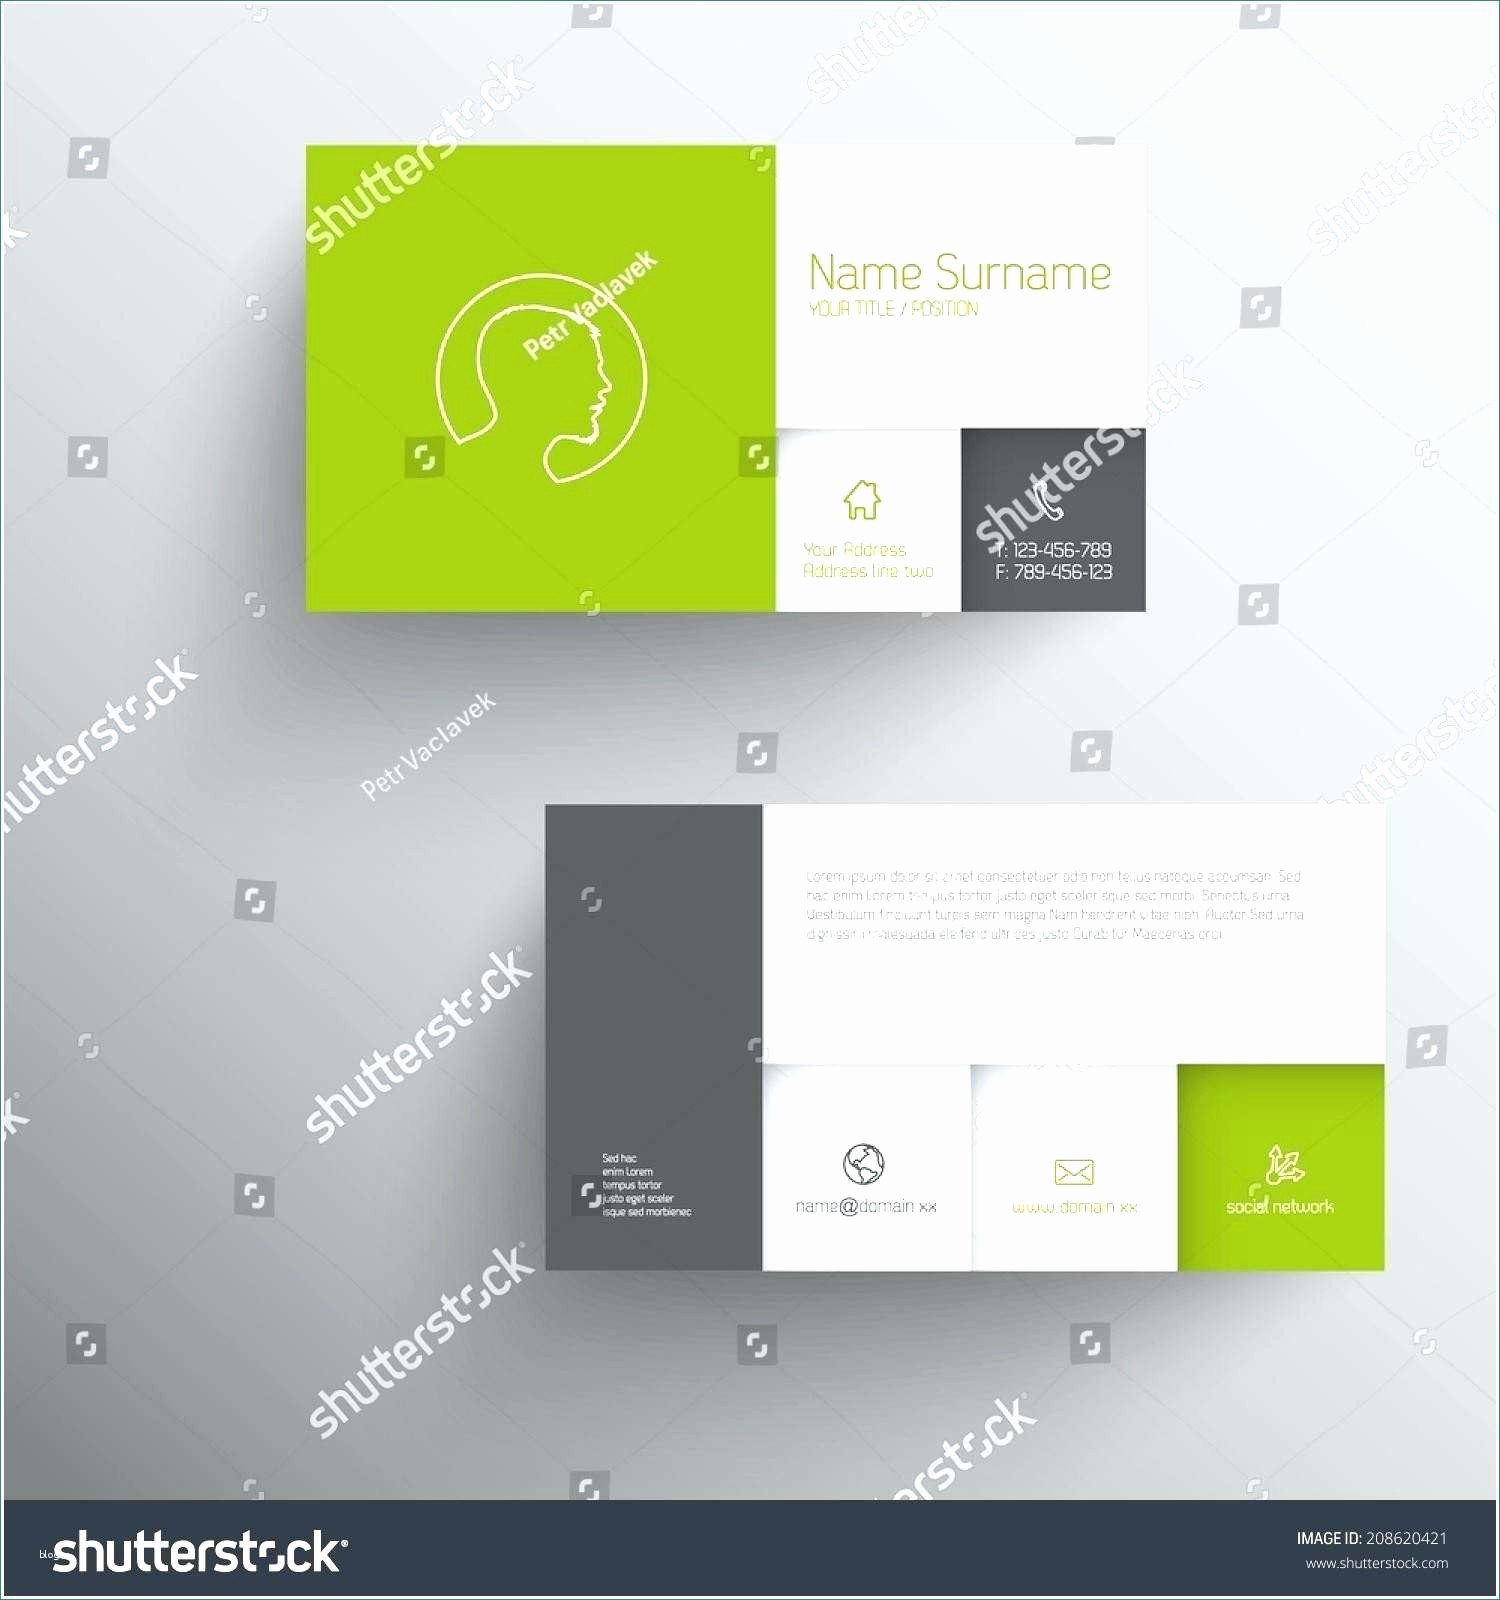 Ms Publisher Business Card Templates Awesome Microsoft Publisher Business Card Templates Fantastic